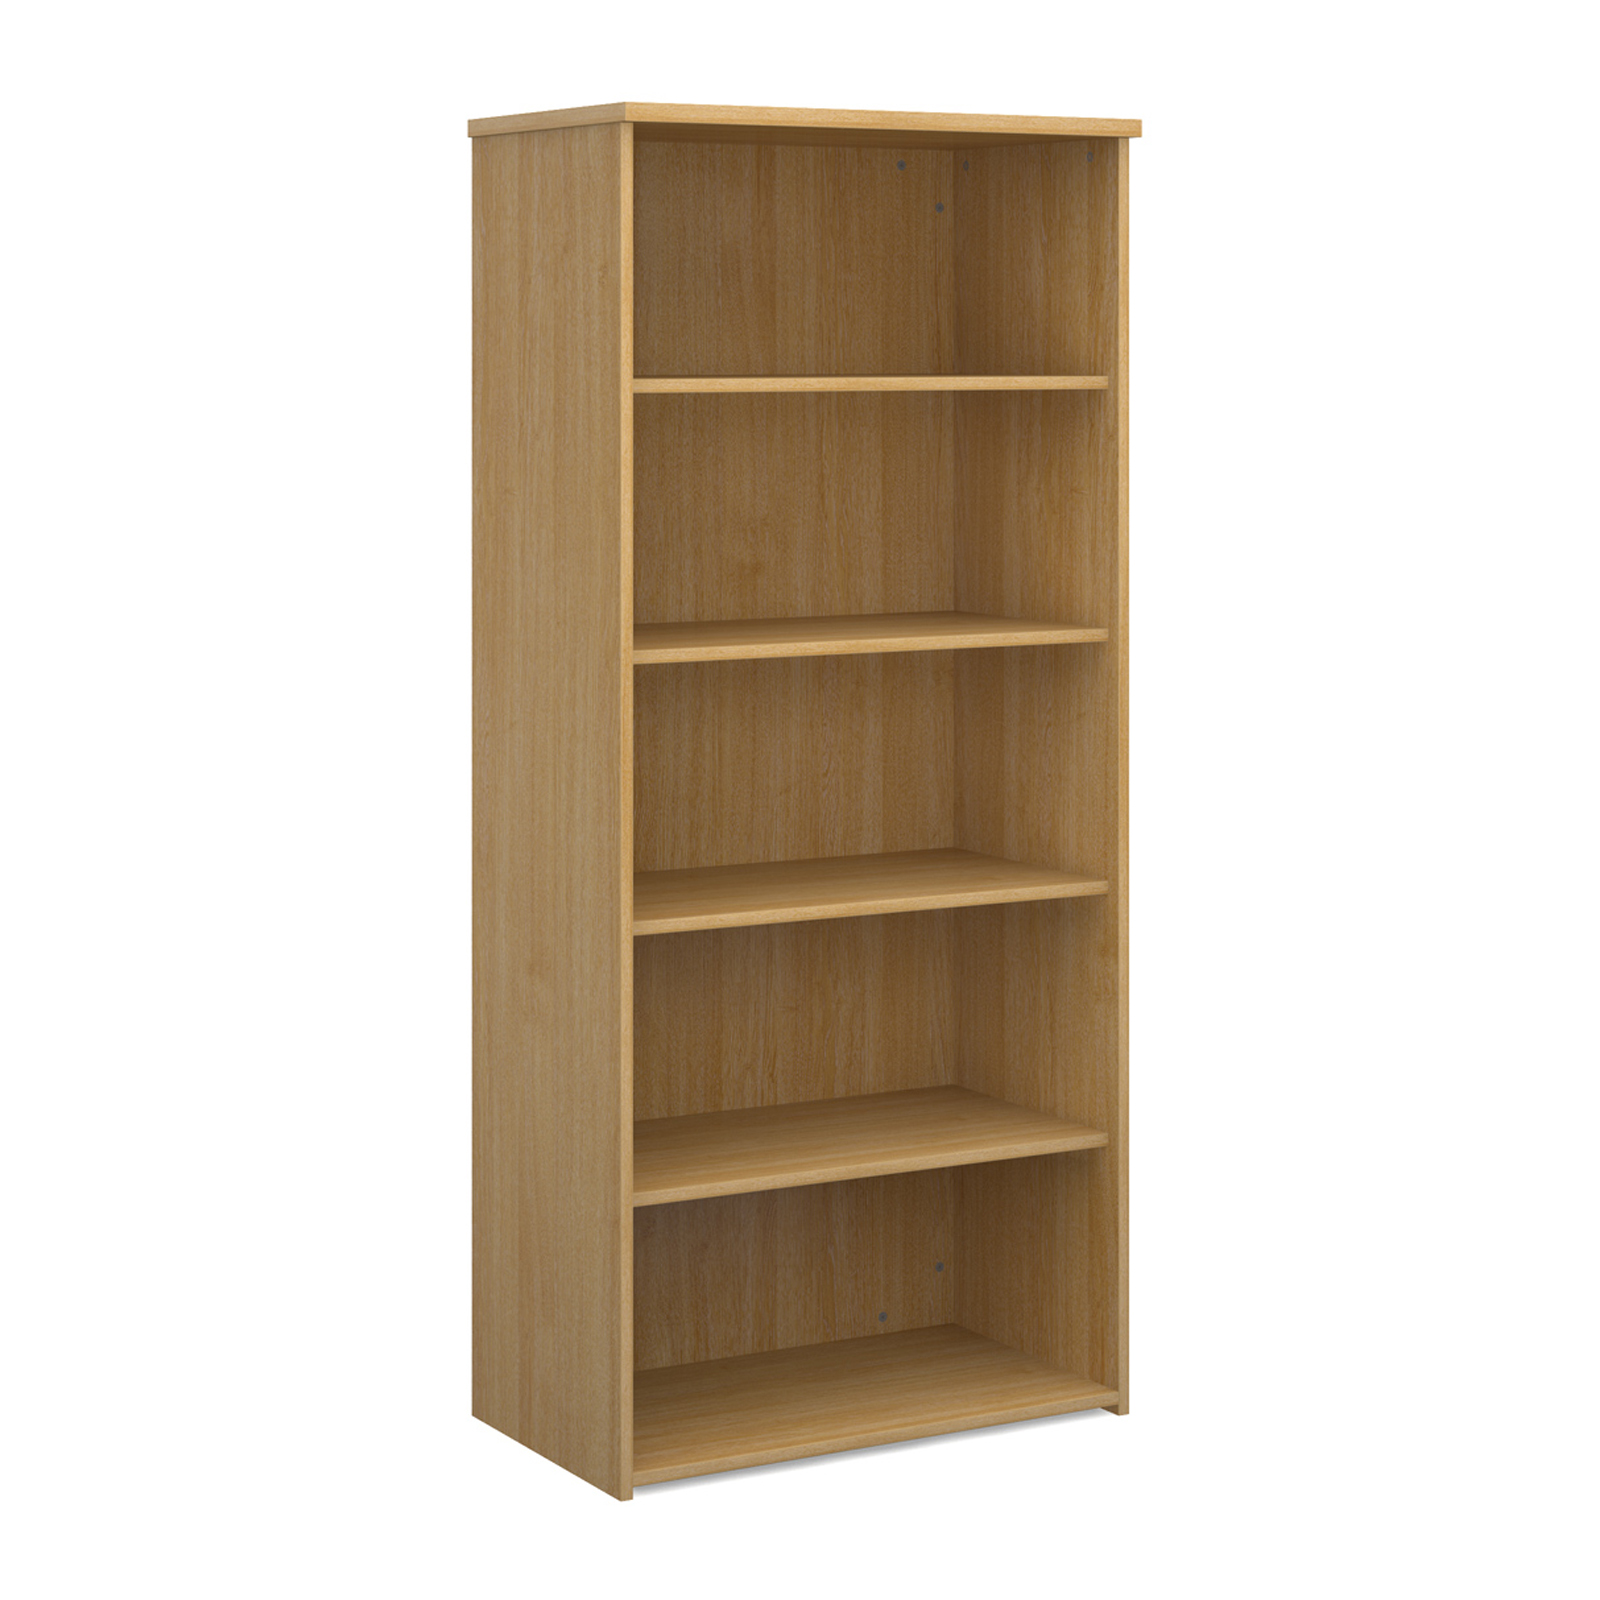 Over 1200mm High Universal bookcase 1790mm high with 4 shelves - oak